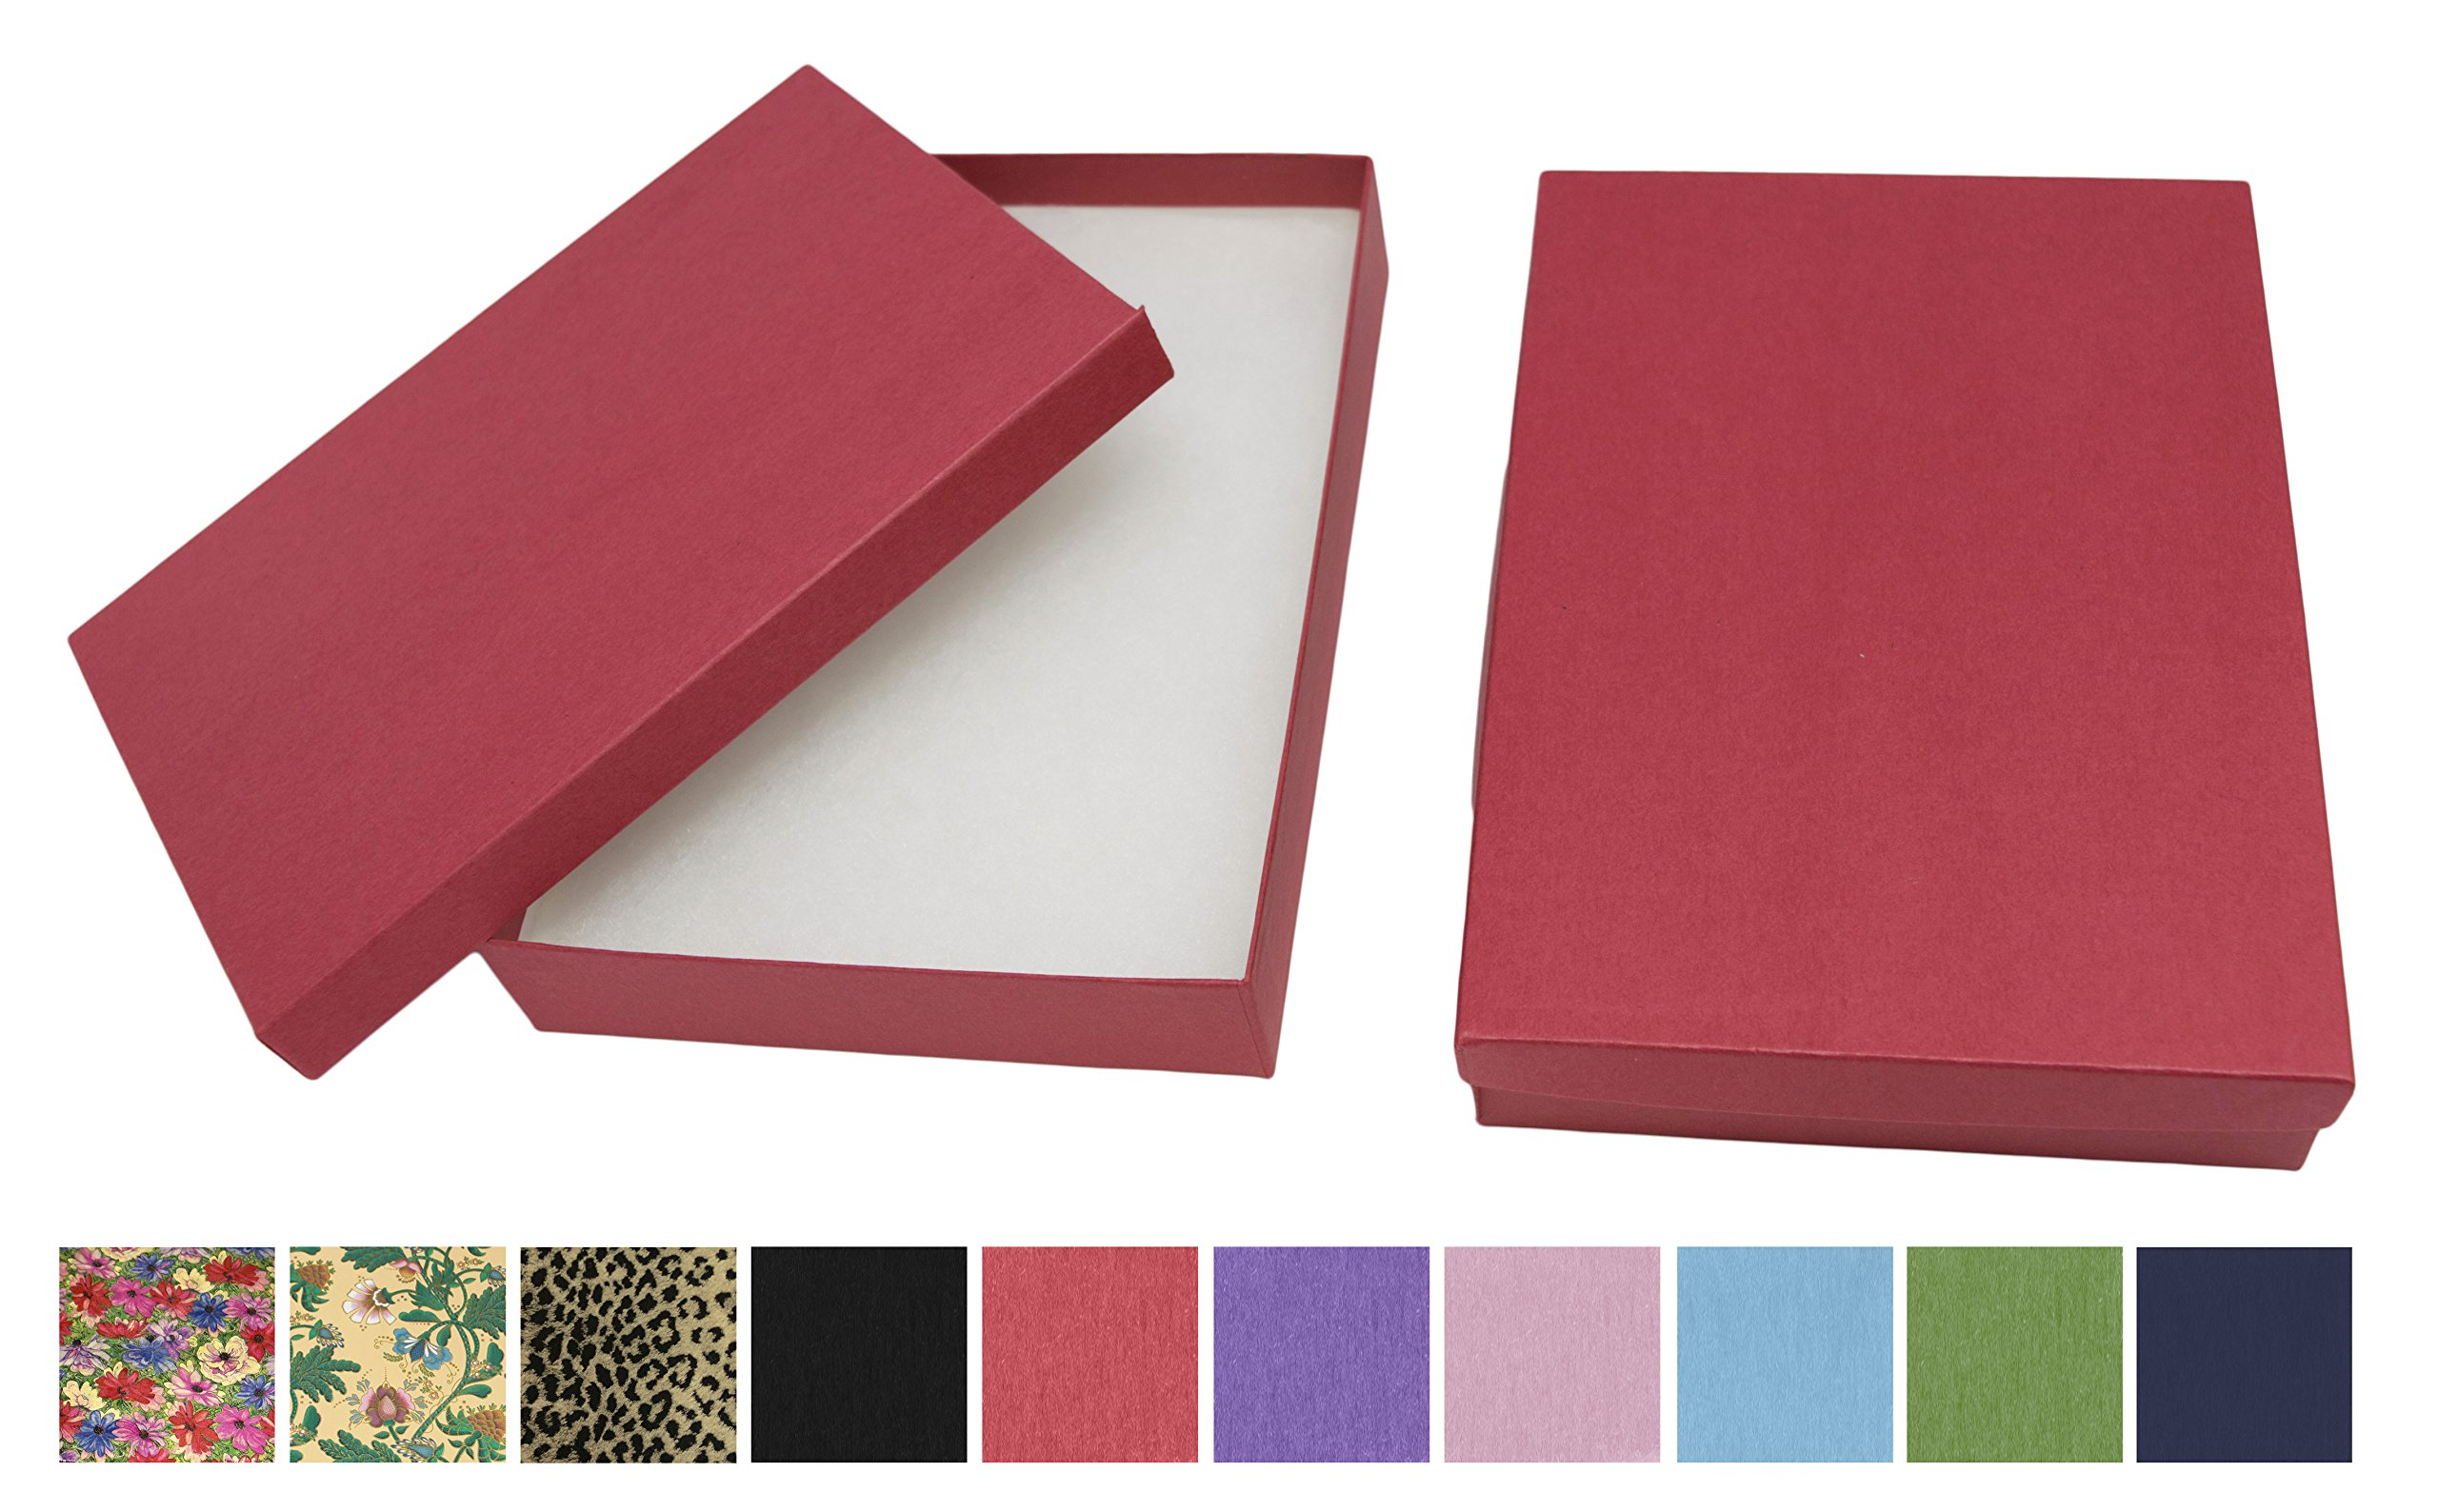 Novel Box® MADE IN USA Jewelry Gift Box in Red Kraft With Removable Cotton Pad 7X5X1.25'' (Pack of 8) + Custom NB Pouch